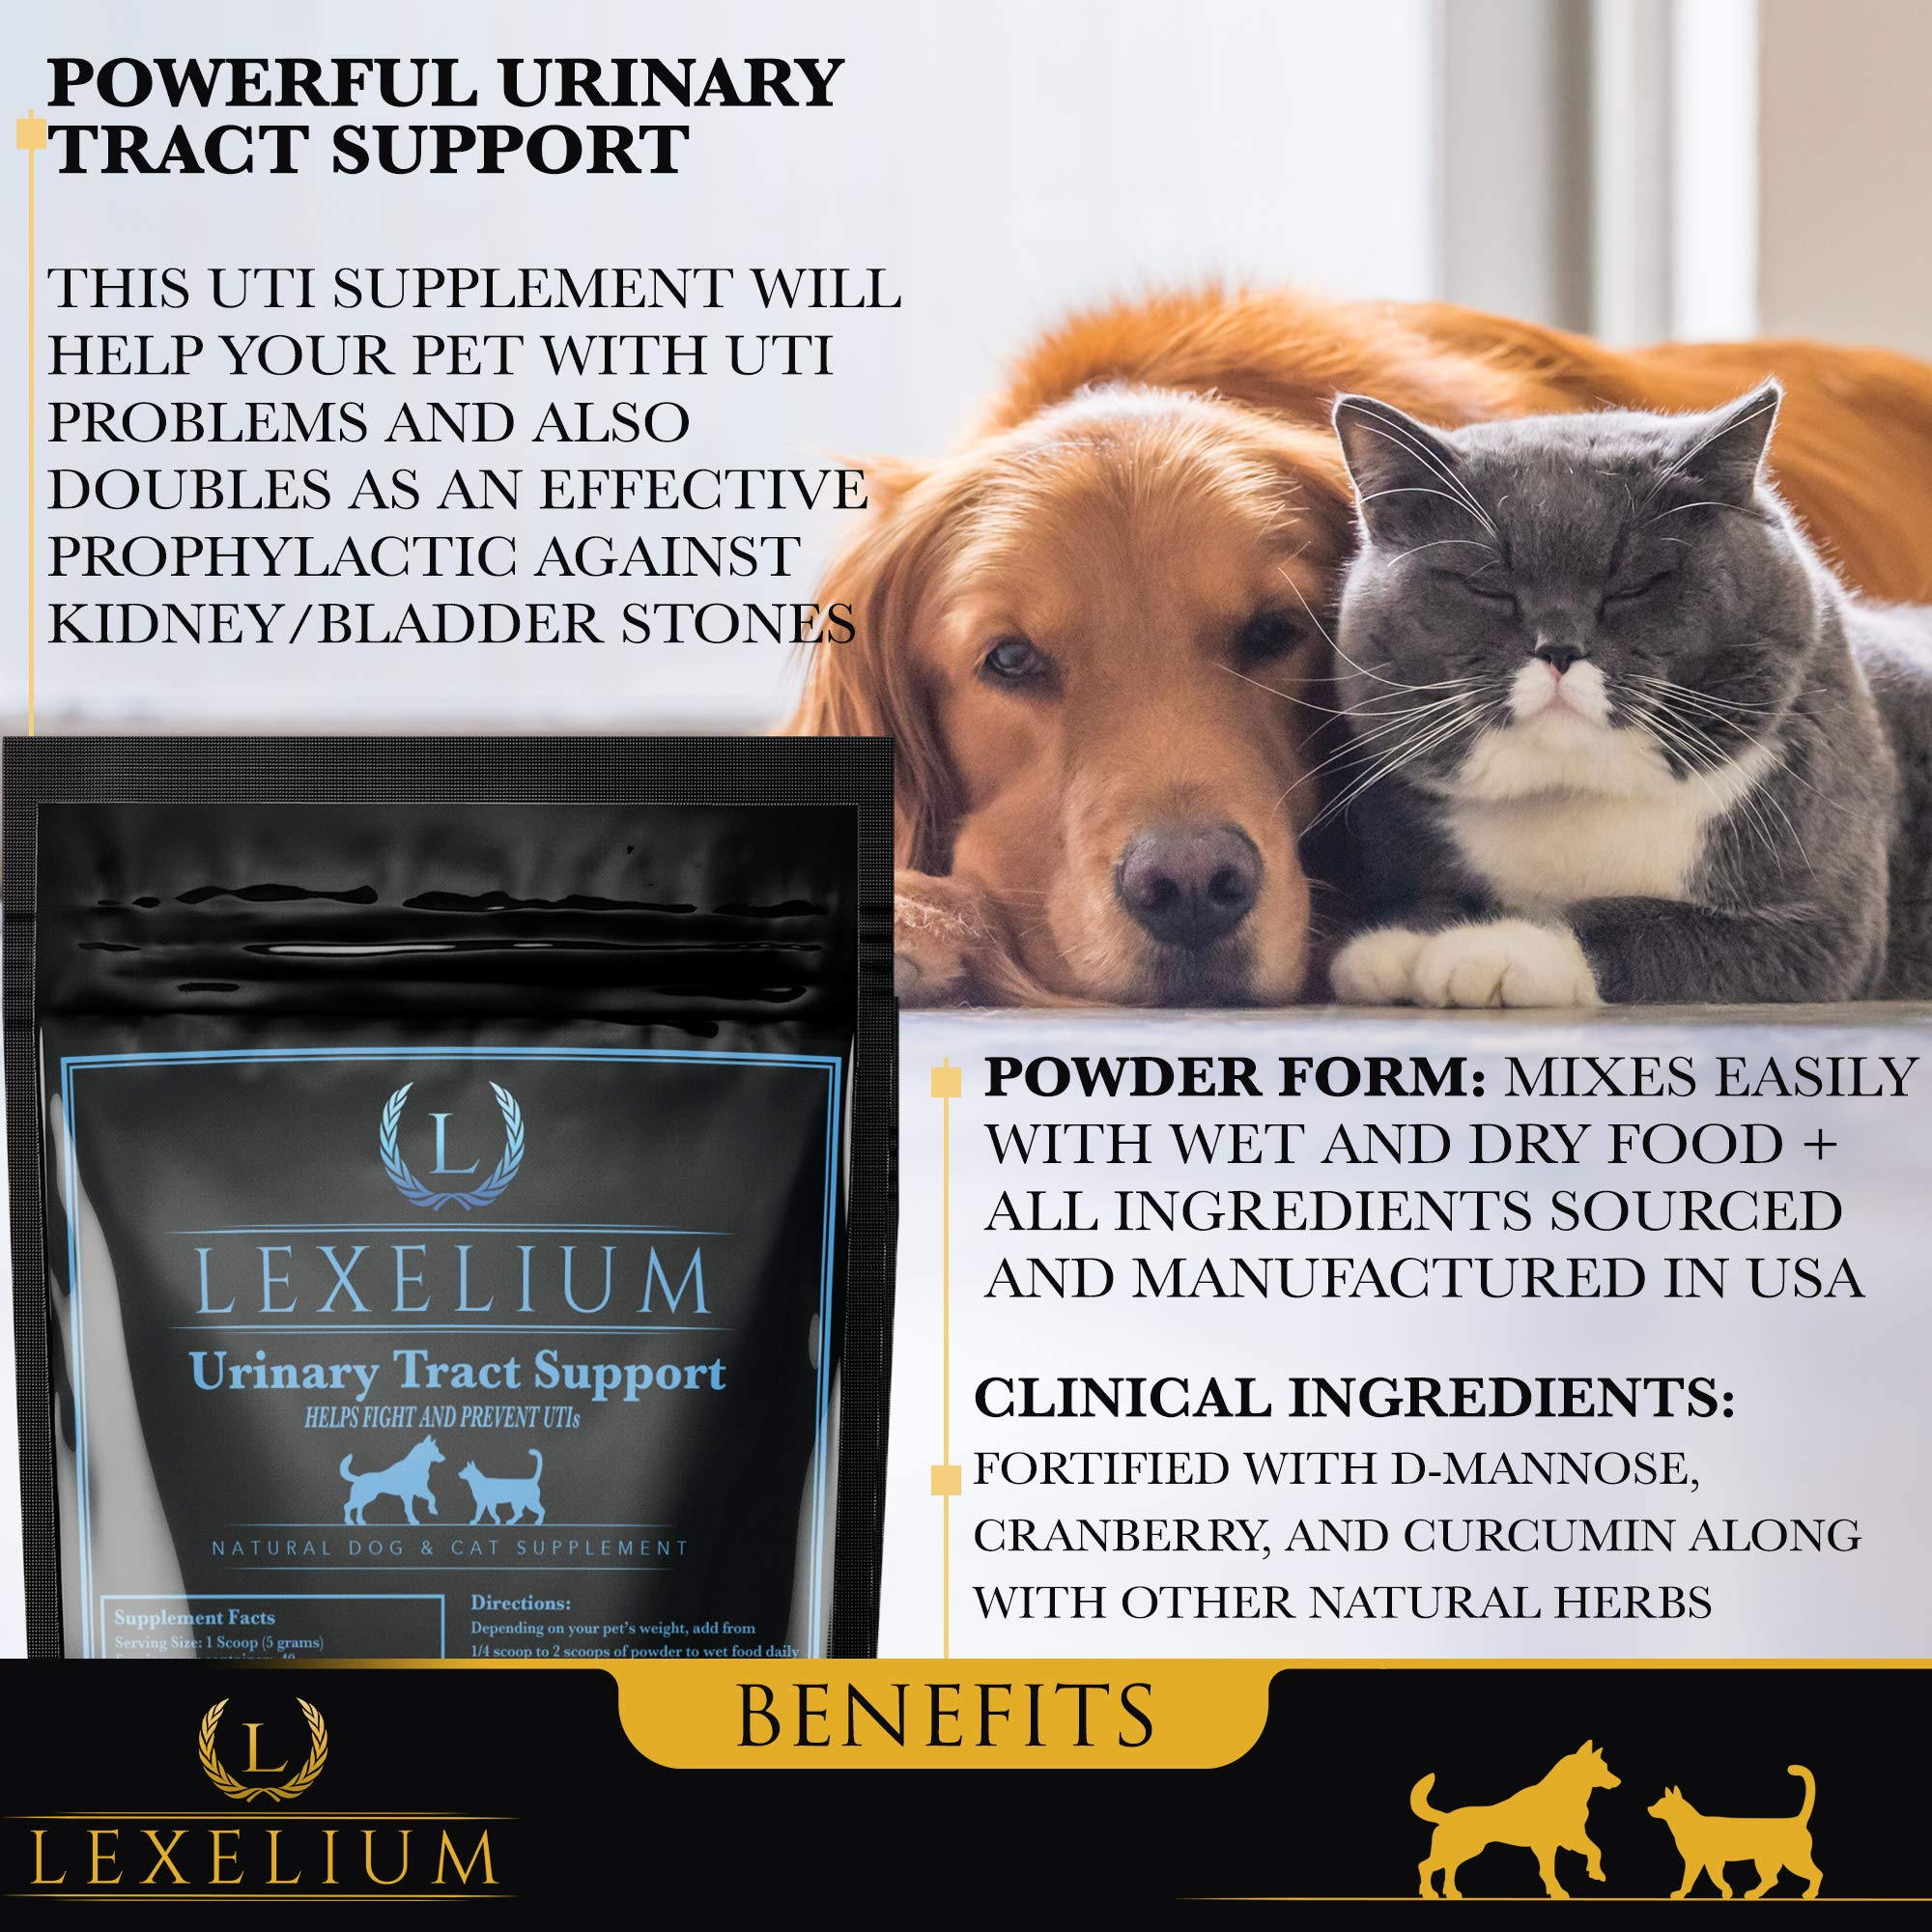 Organic Urinary Tract Infection (UTI) Support for Dogs and Cats | Fortified with Cranberry, D Mannose, and Curcumin | Strengthens Kidney & Bladder Function | Prevents Kidney/Bladder Stones | 200 G by Lexelium (Image #2)